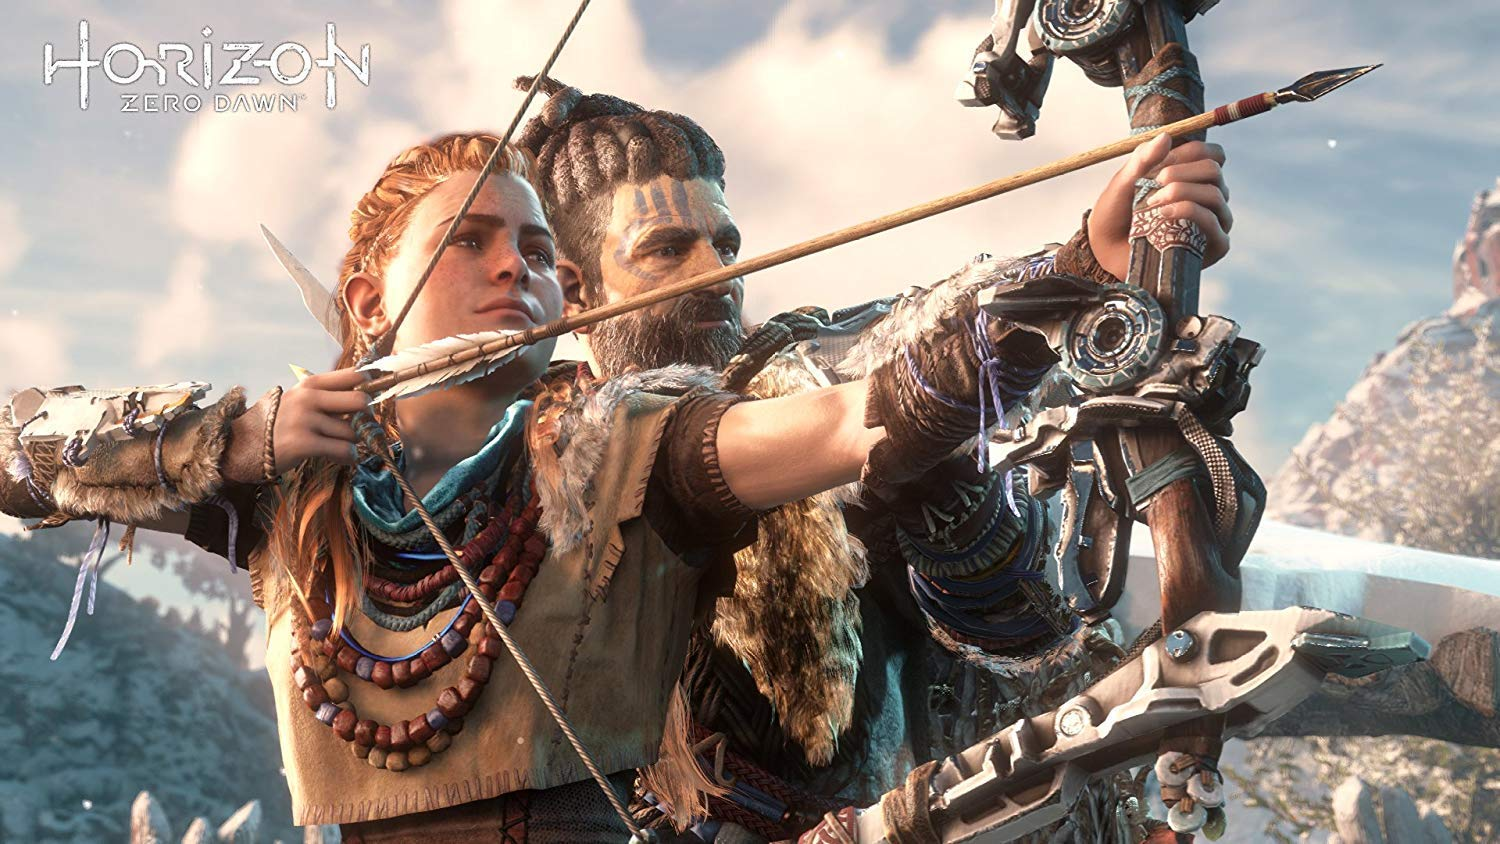 Horizon-Zero-Dawn-The-Frozen-Wilds-game-Wallpaper Top 10 Most Anticipated Games for August 2020 [Best Recommendations]